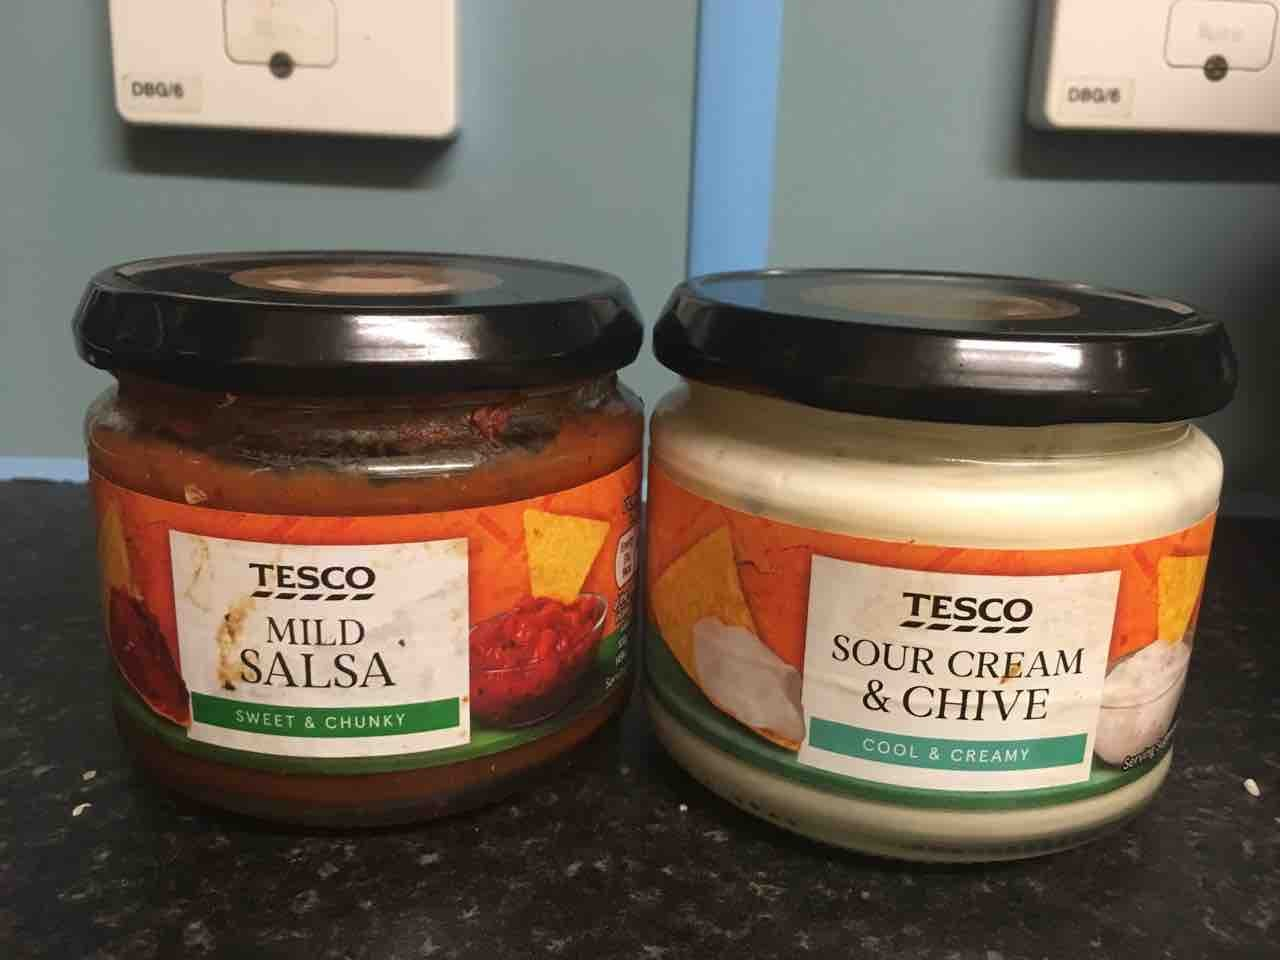 Tesco salsa and sour cream dip